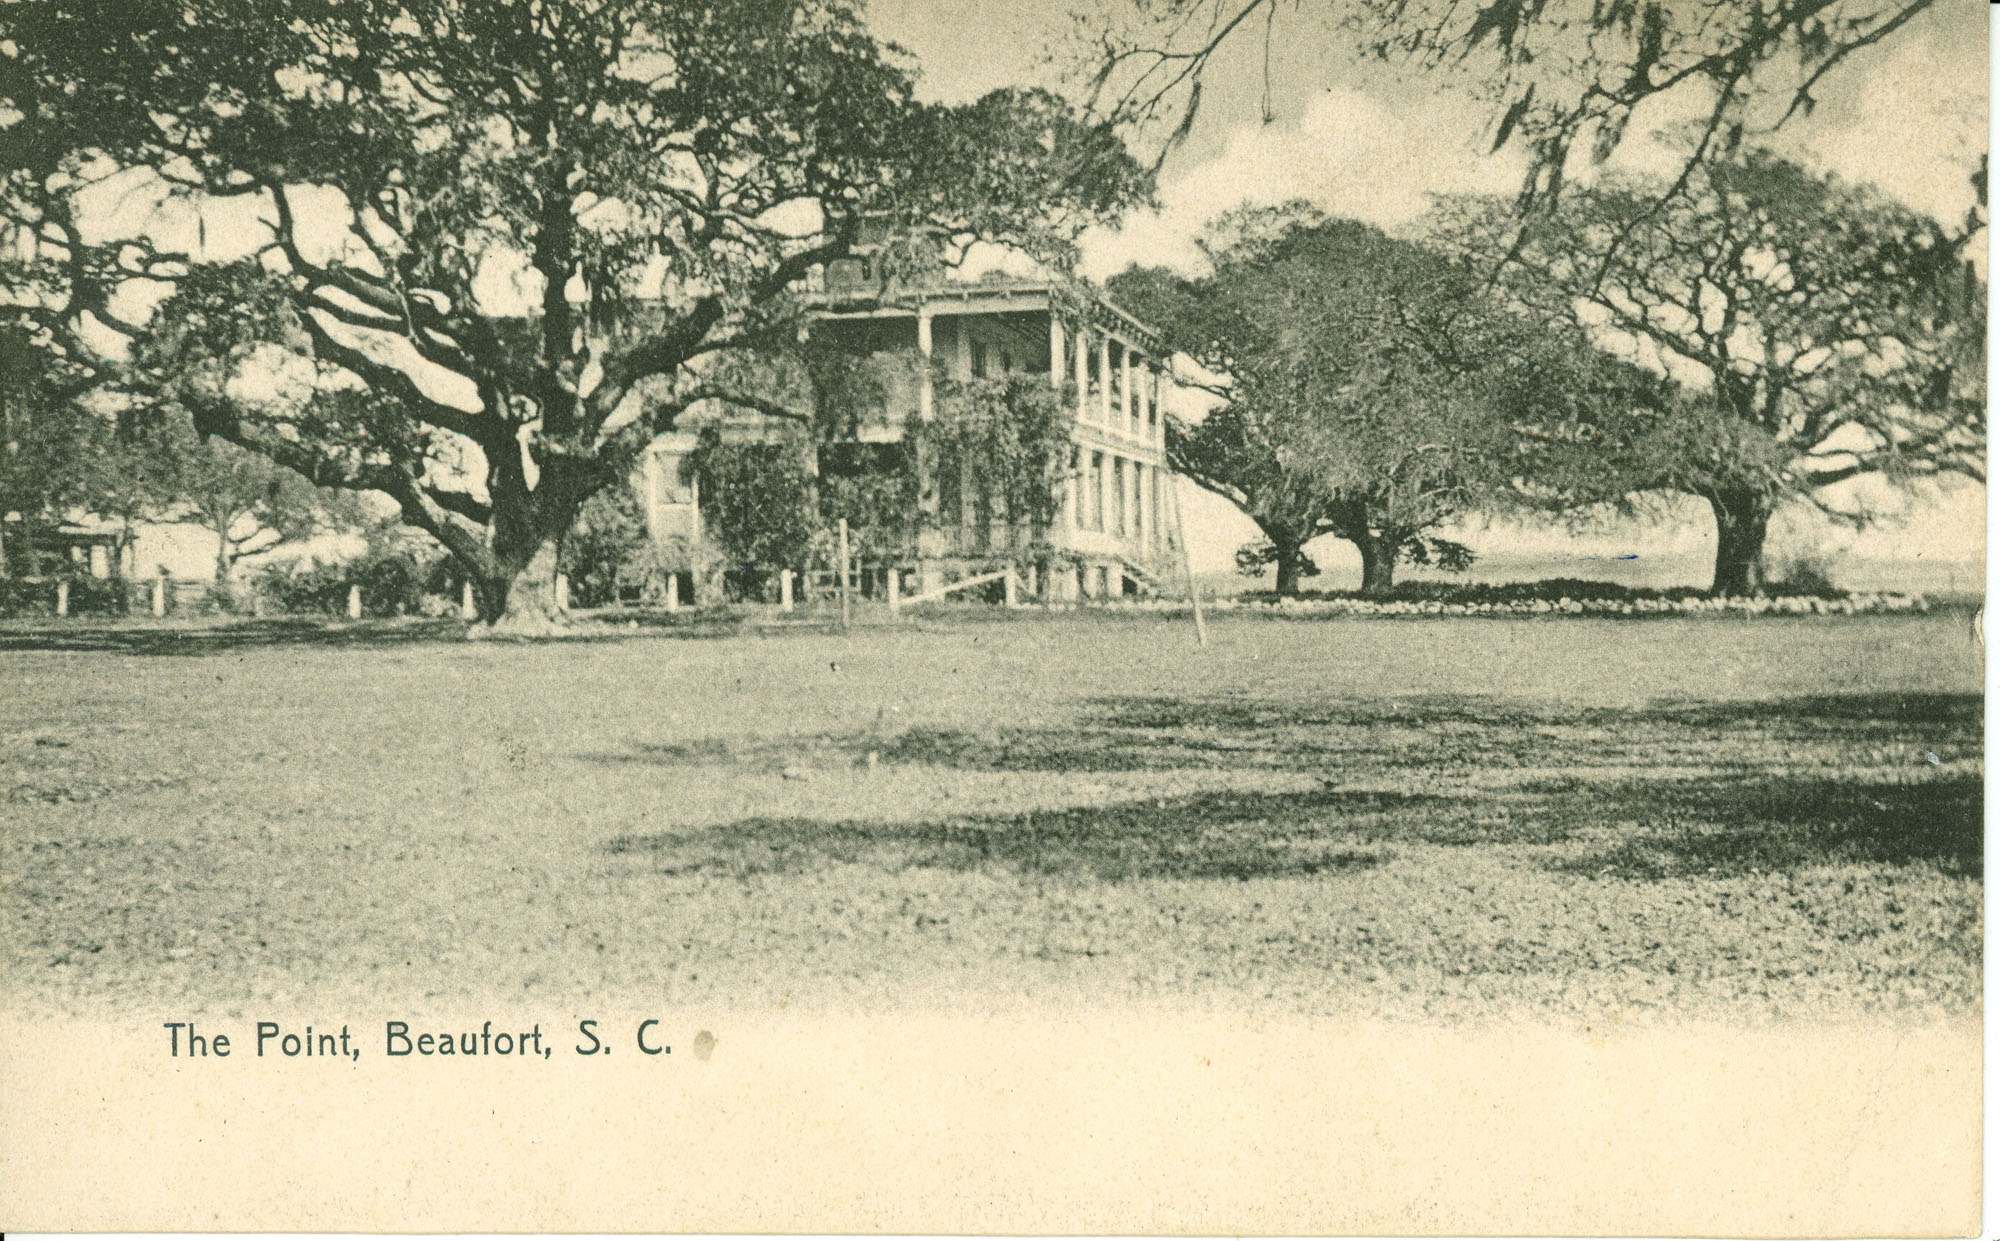 The Point, Beaufort, S.C.